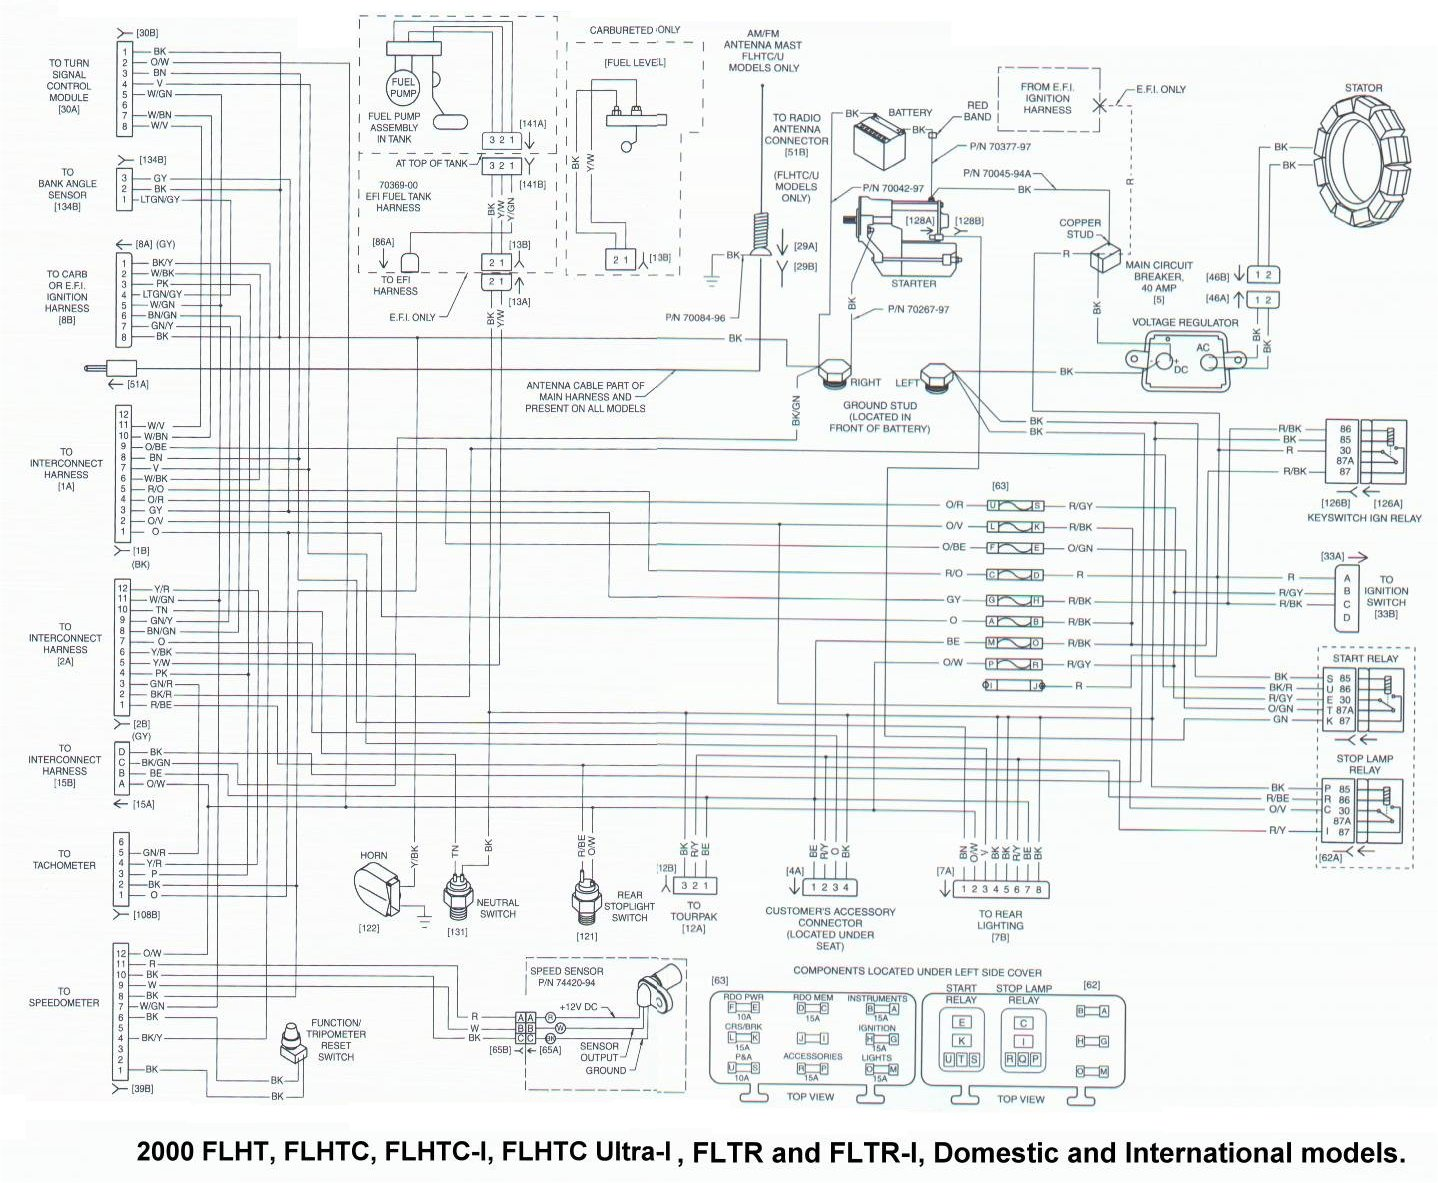 Harley Davidson Engine Schematics Expert Category Circuit Diagram Harle Diagrams Wiring For A 1975 Flh Layout U2022 Rh Laurafinlay Co Uk